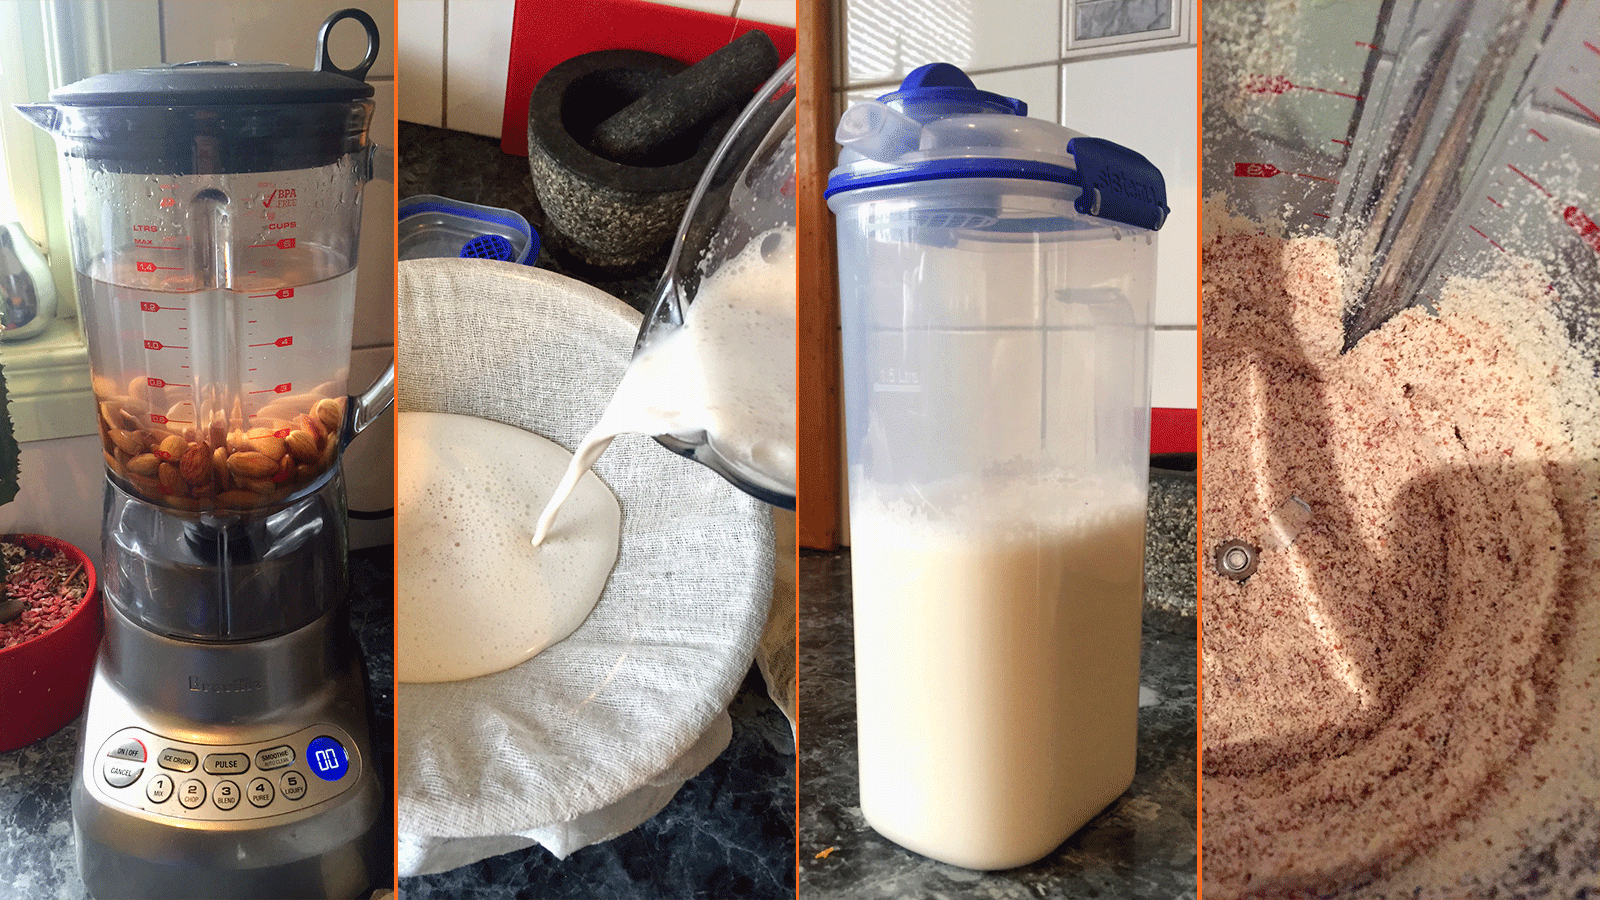 Recipe: Almond Milk & Almond Meal